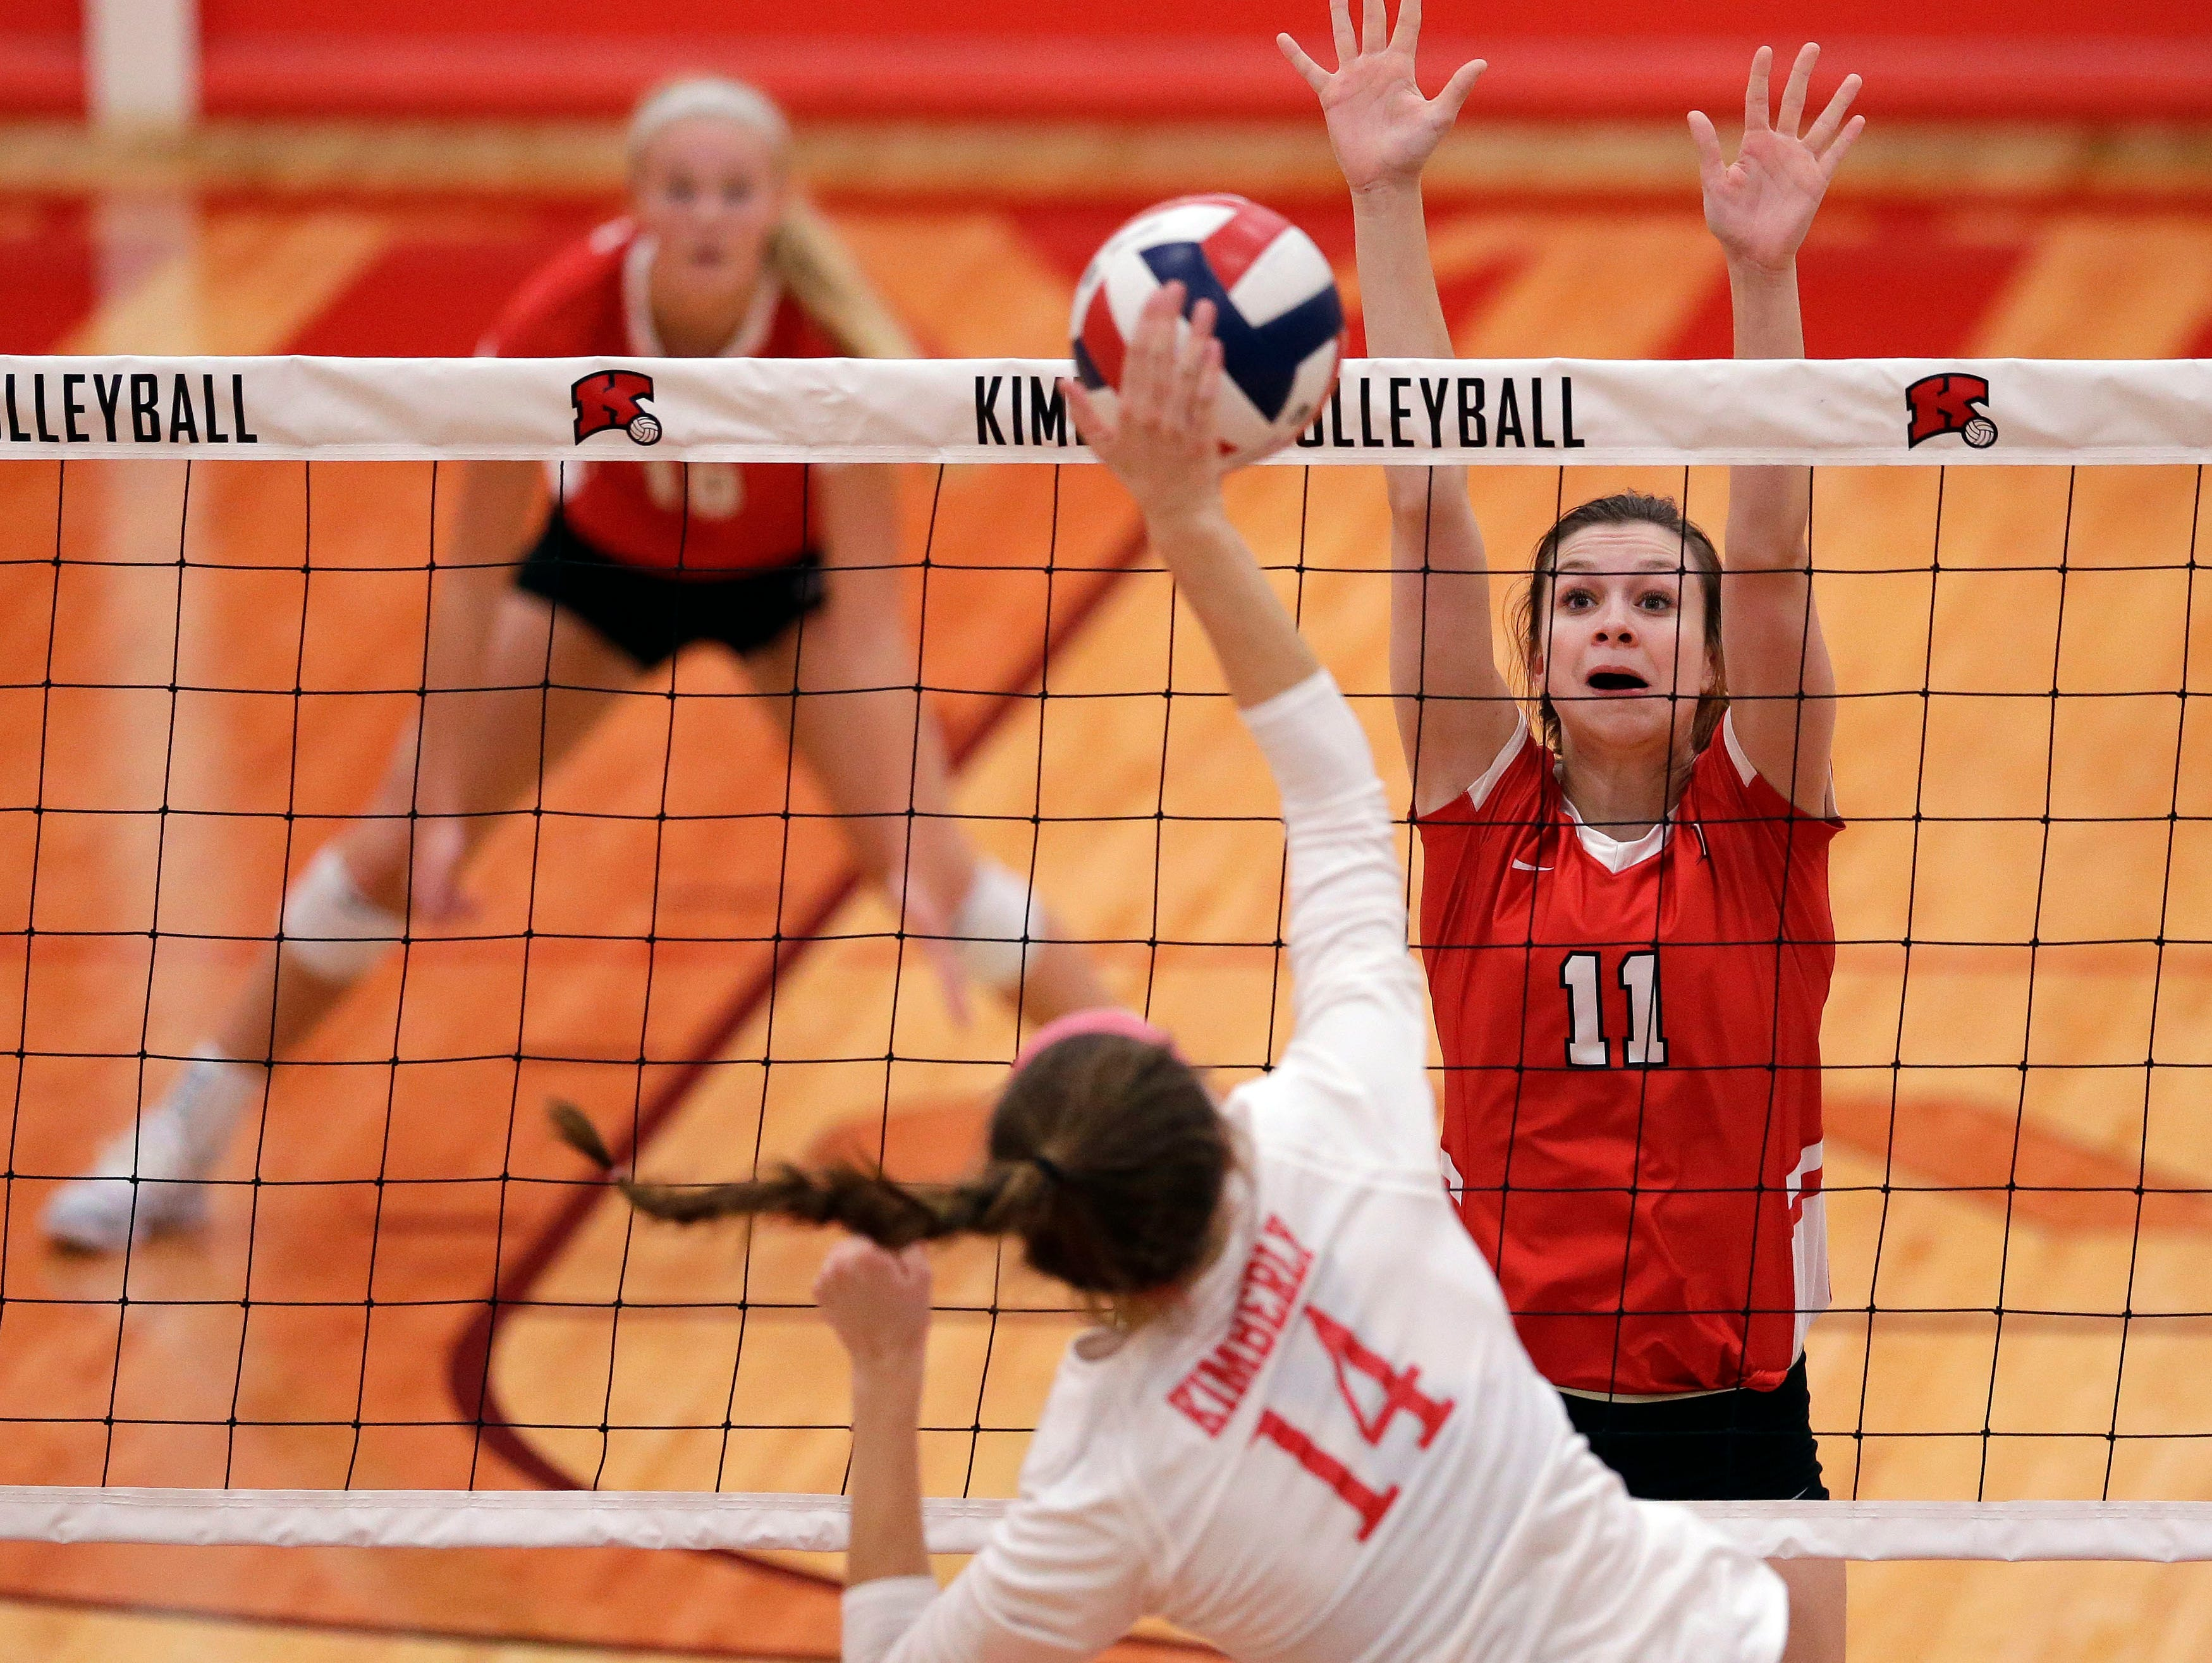 Maddy Schreiber of Kimberly hits as Reagan Obry of Neenah looks to block in FVA girls volleyball Tuesday, September 11, 2018, at Kimberly High School in Kimberly, Wis.Ron Page/USA TODAY NETWORK-Wisconsin